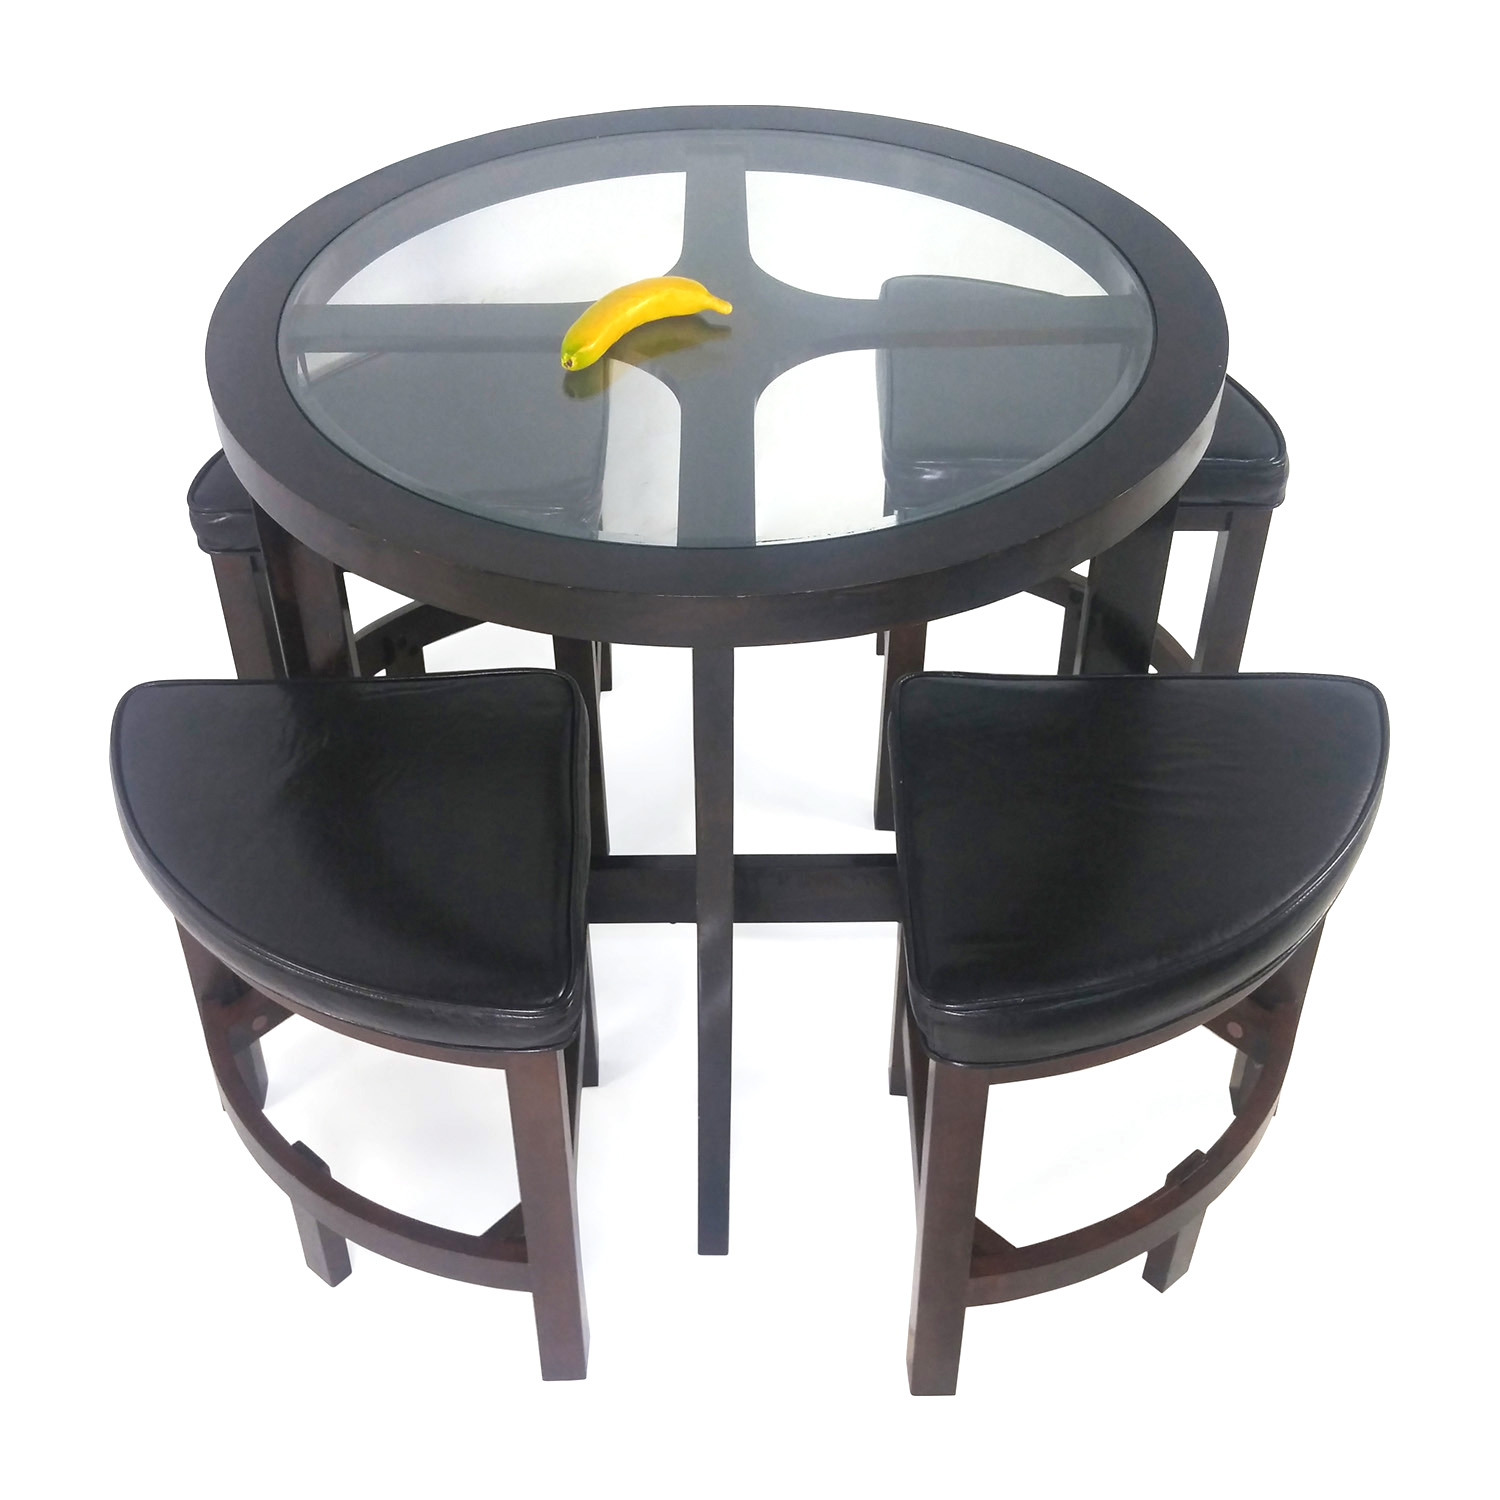 Tables Chairs For Sale: Amazon Circular Dinette With 4 Chairs / Tables